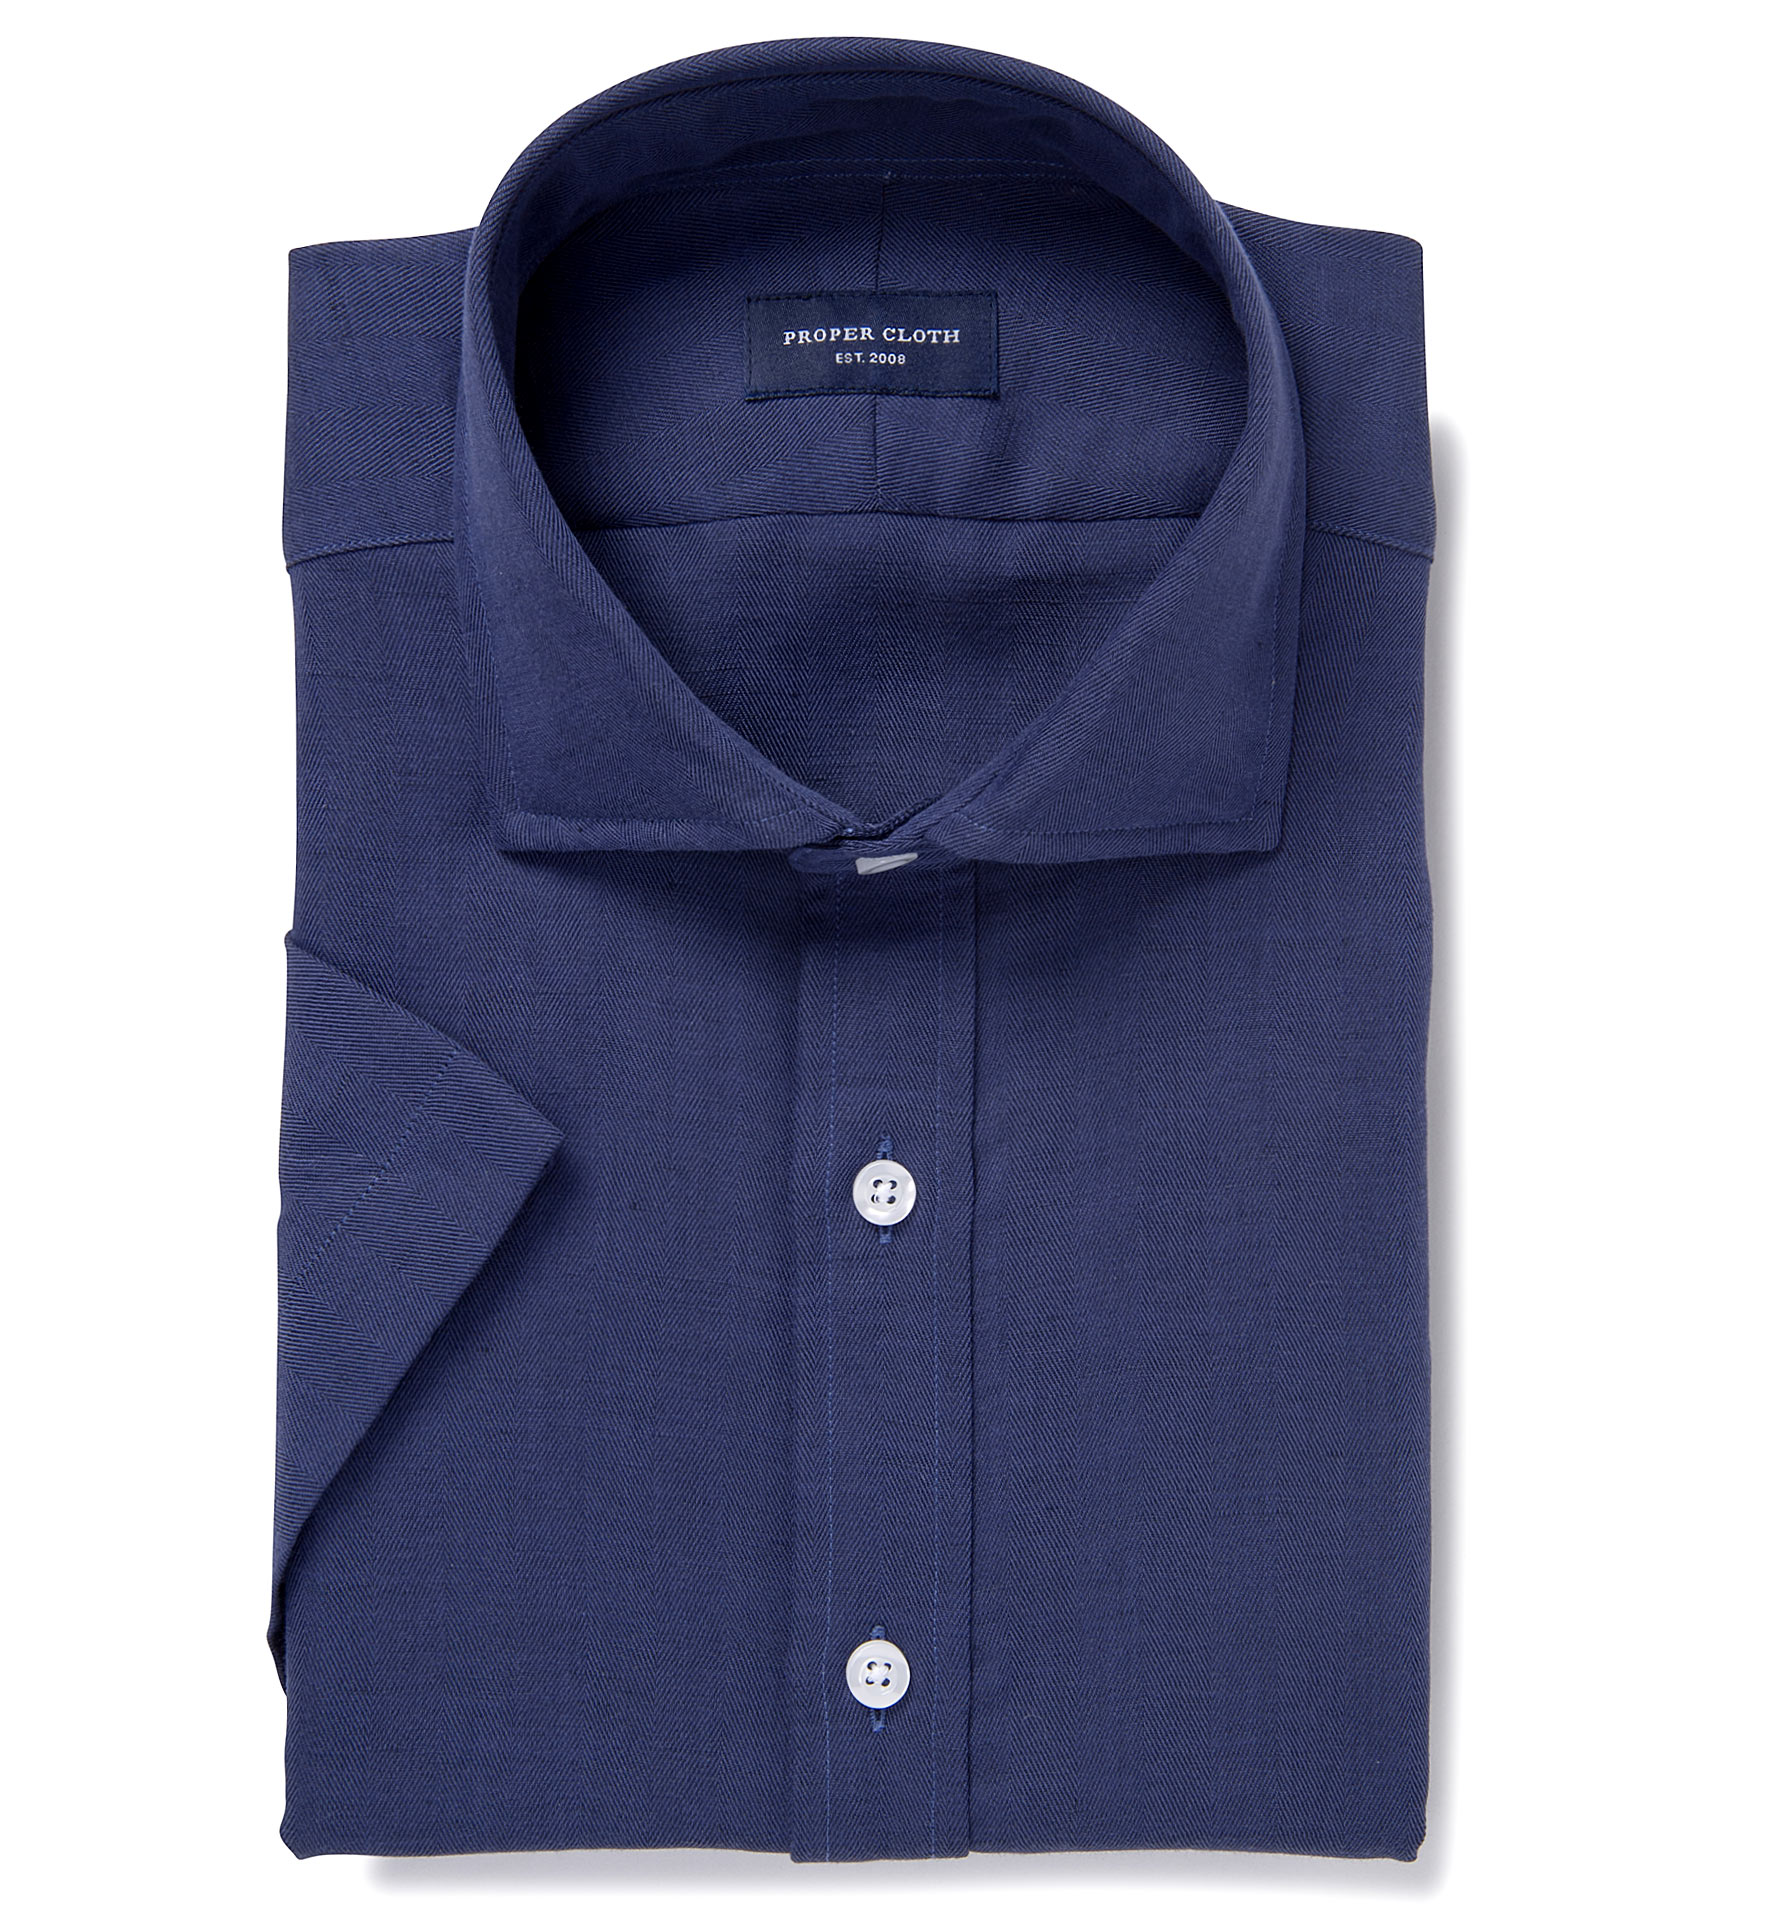 Portuguese vintage navy cotton linen herringbone tailor for Proper cloth custom shirt price